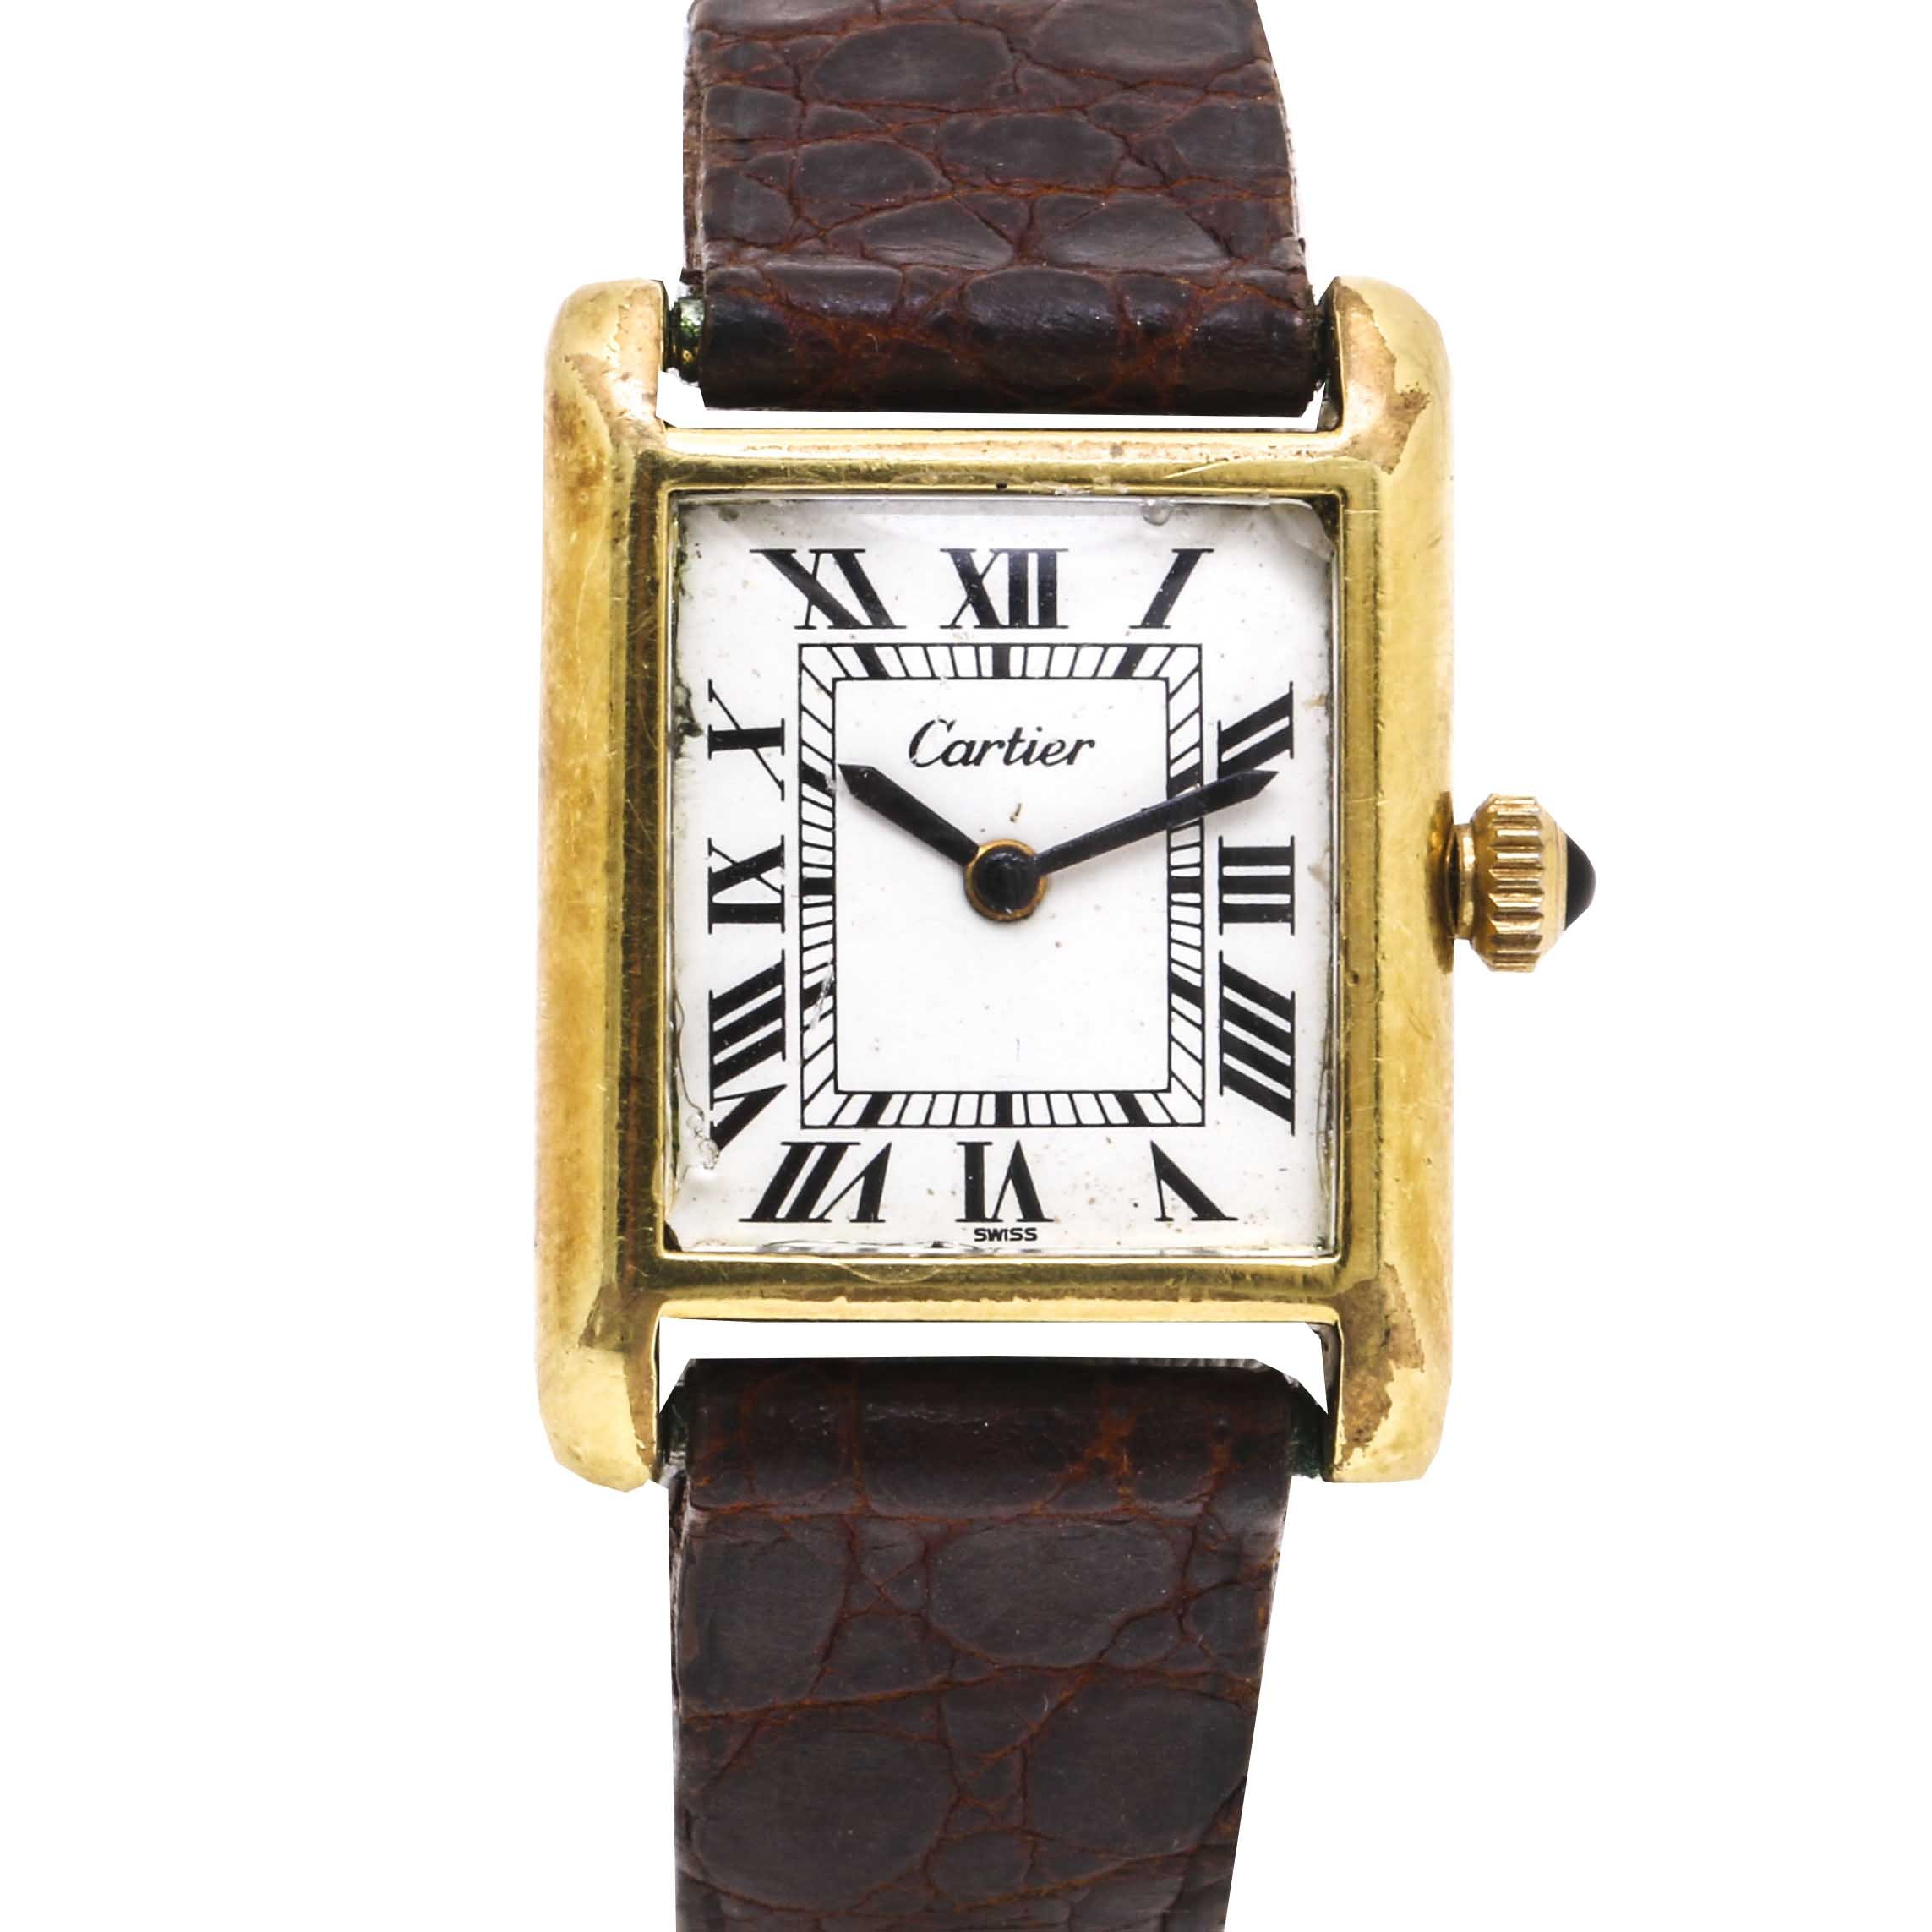 Vintage Cartier 18K Gold Electroplated Manual Wind Tank Wristwatch